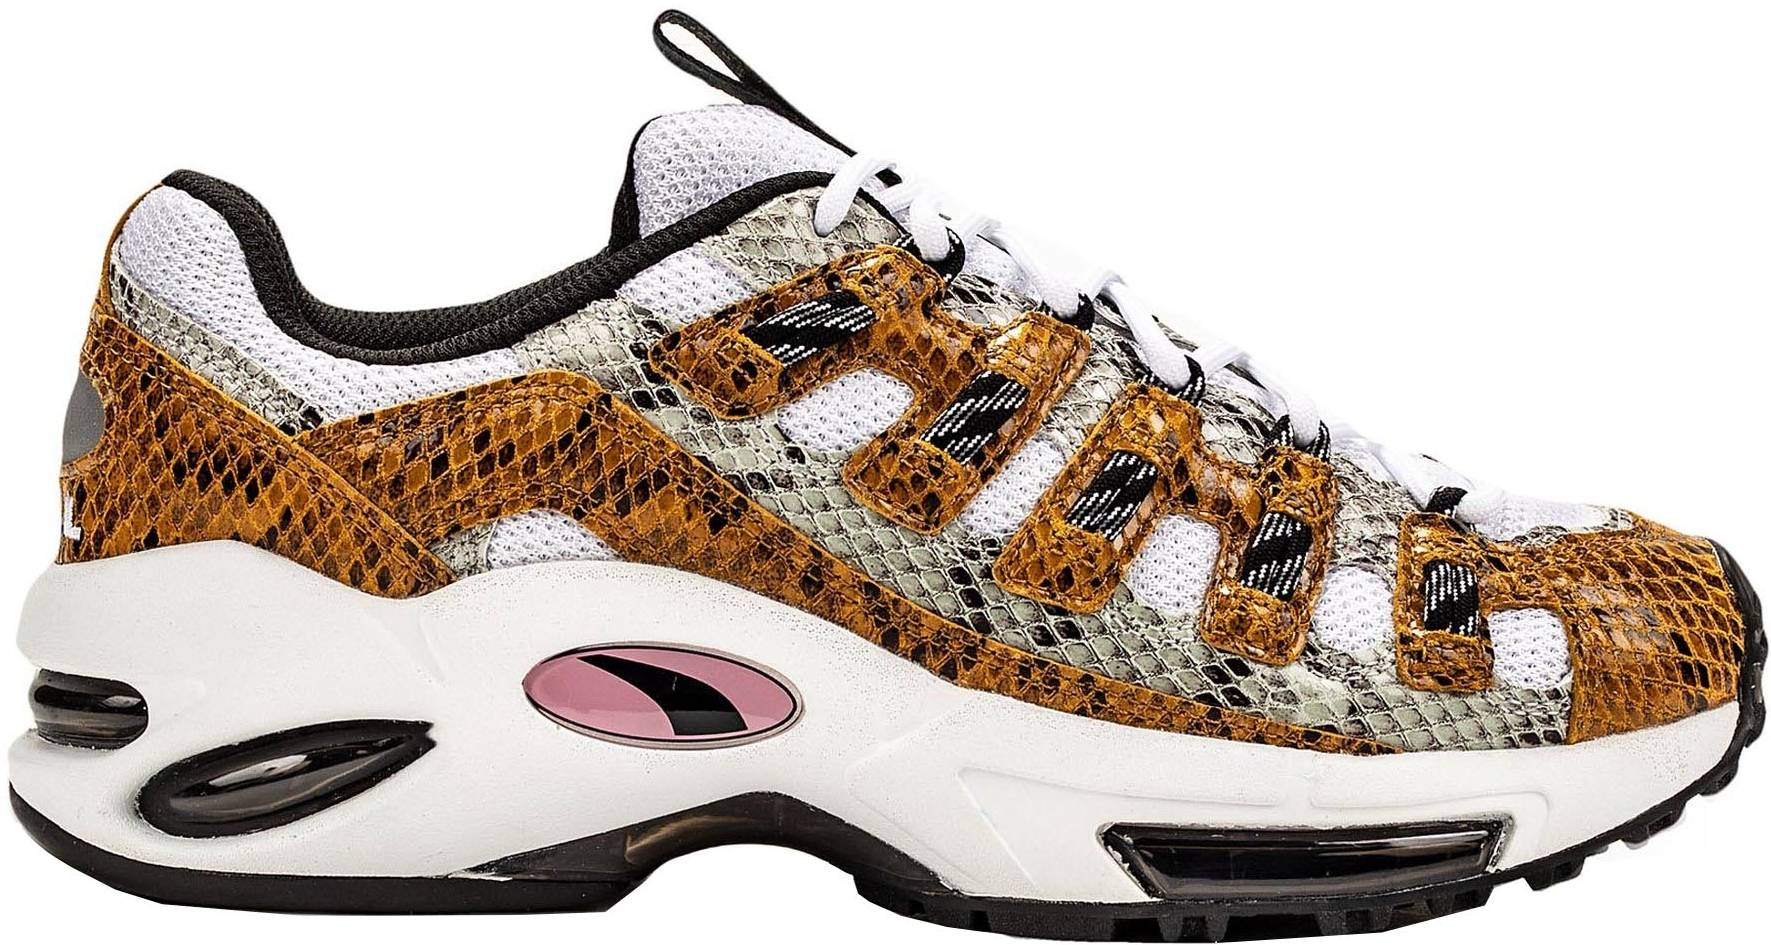 Instruir Cartas credenciales Fuera de borda  Puma CELL Endura Animal Kingdom sneakers (only $55) | RunRepeat